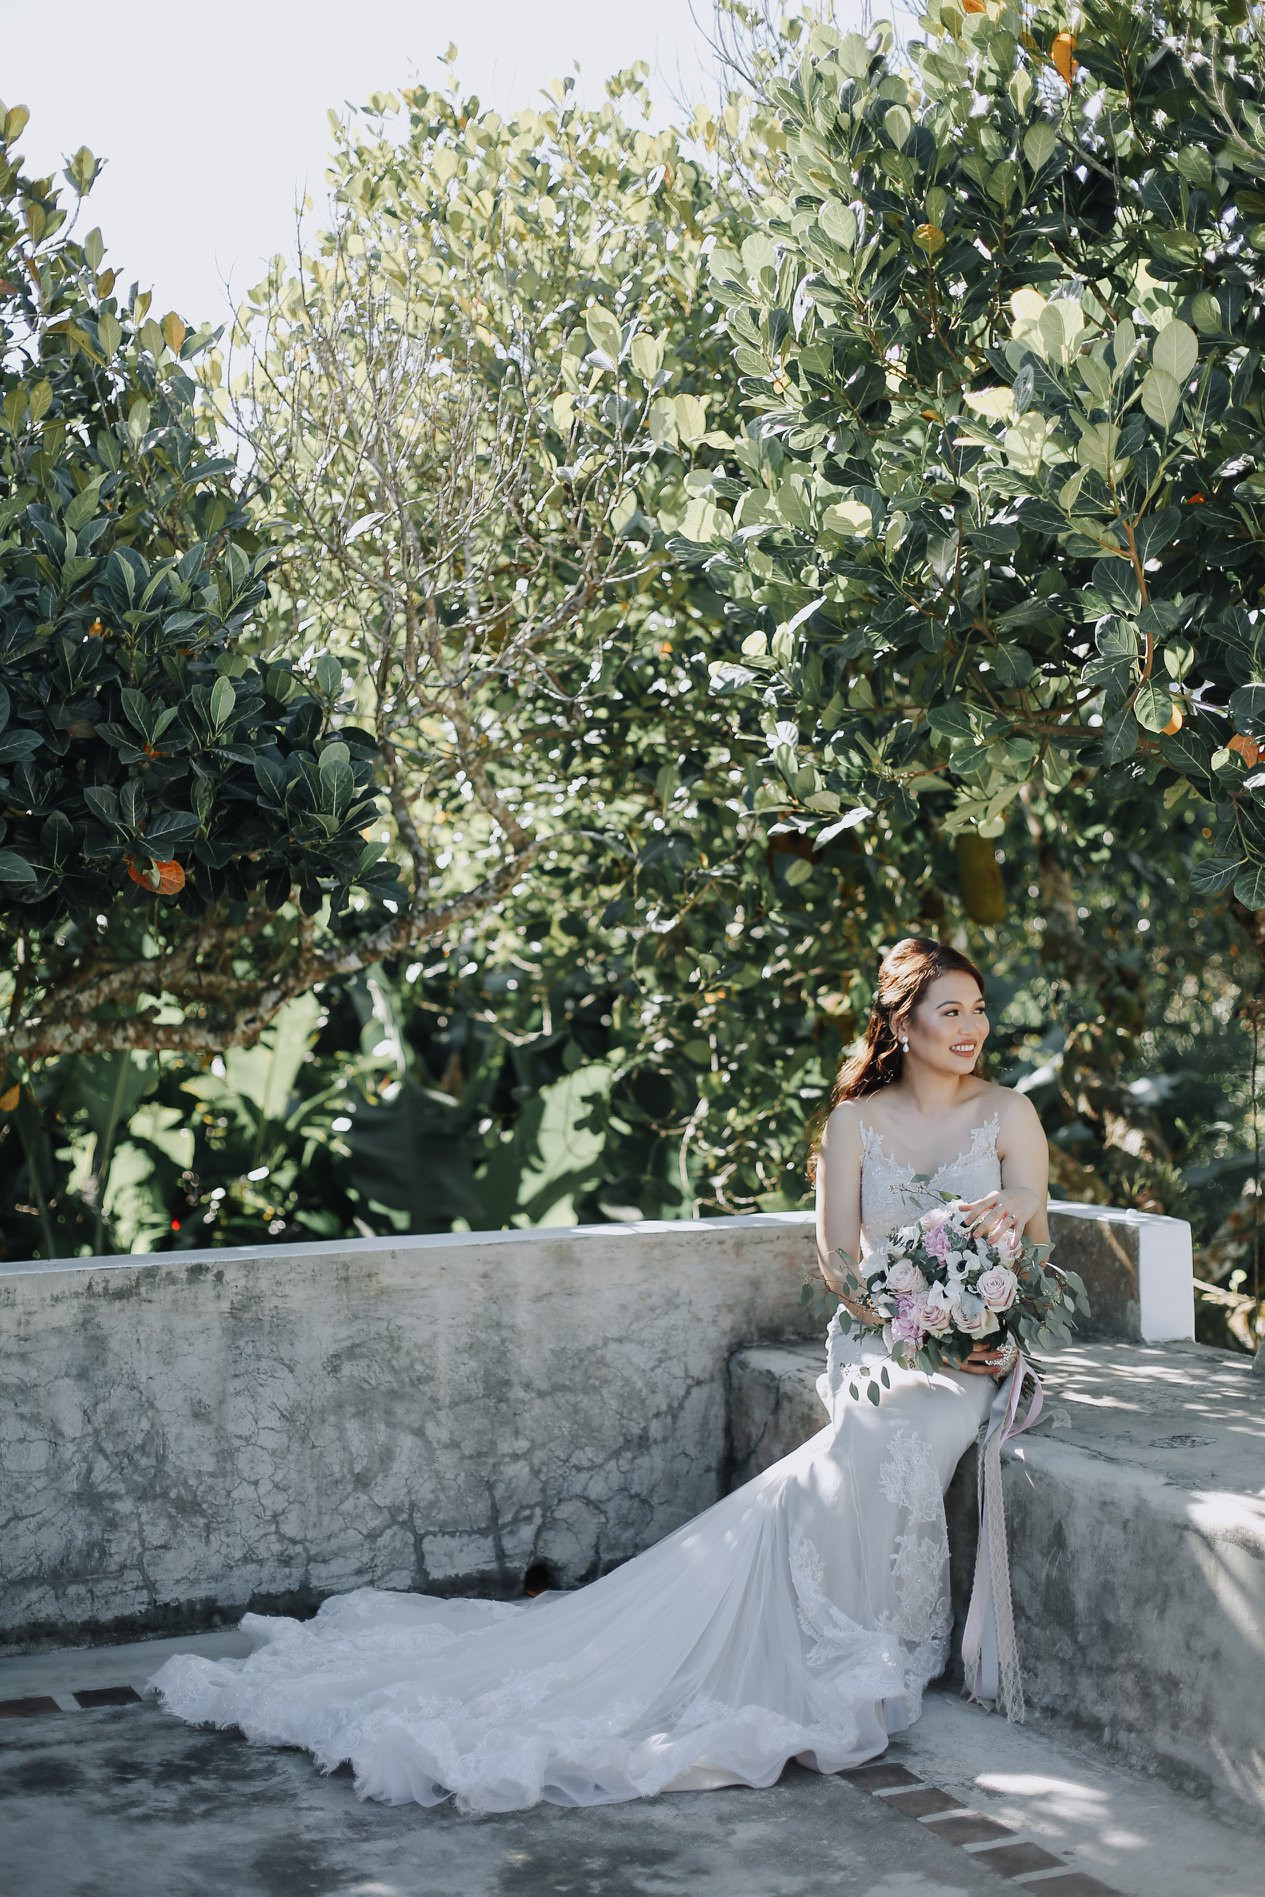 Photographer: Sun Kissed Stories Hairstylist: Carlo Umipig Bride: Elspeth Galapon